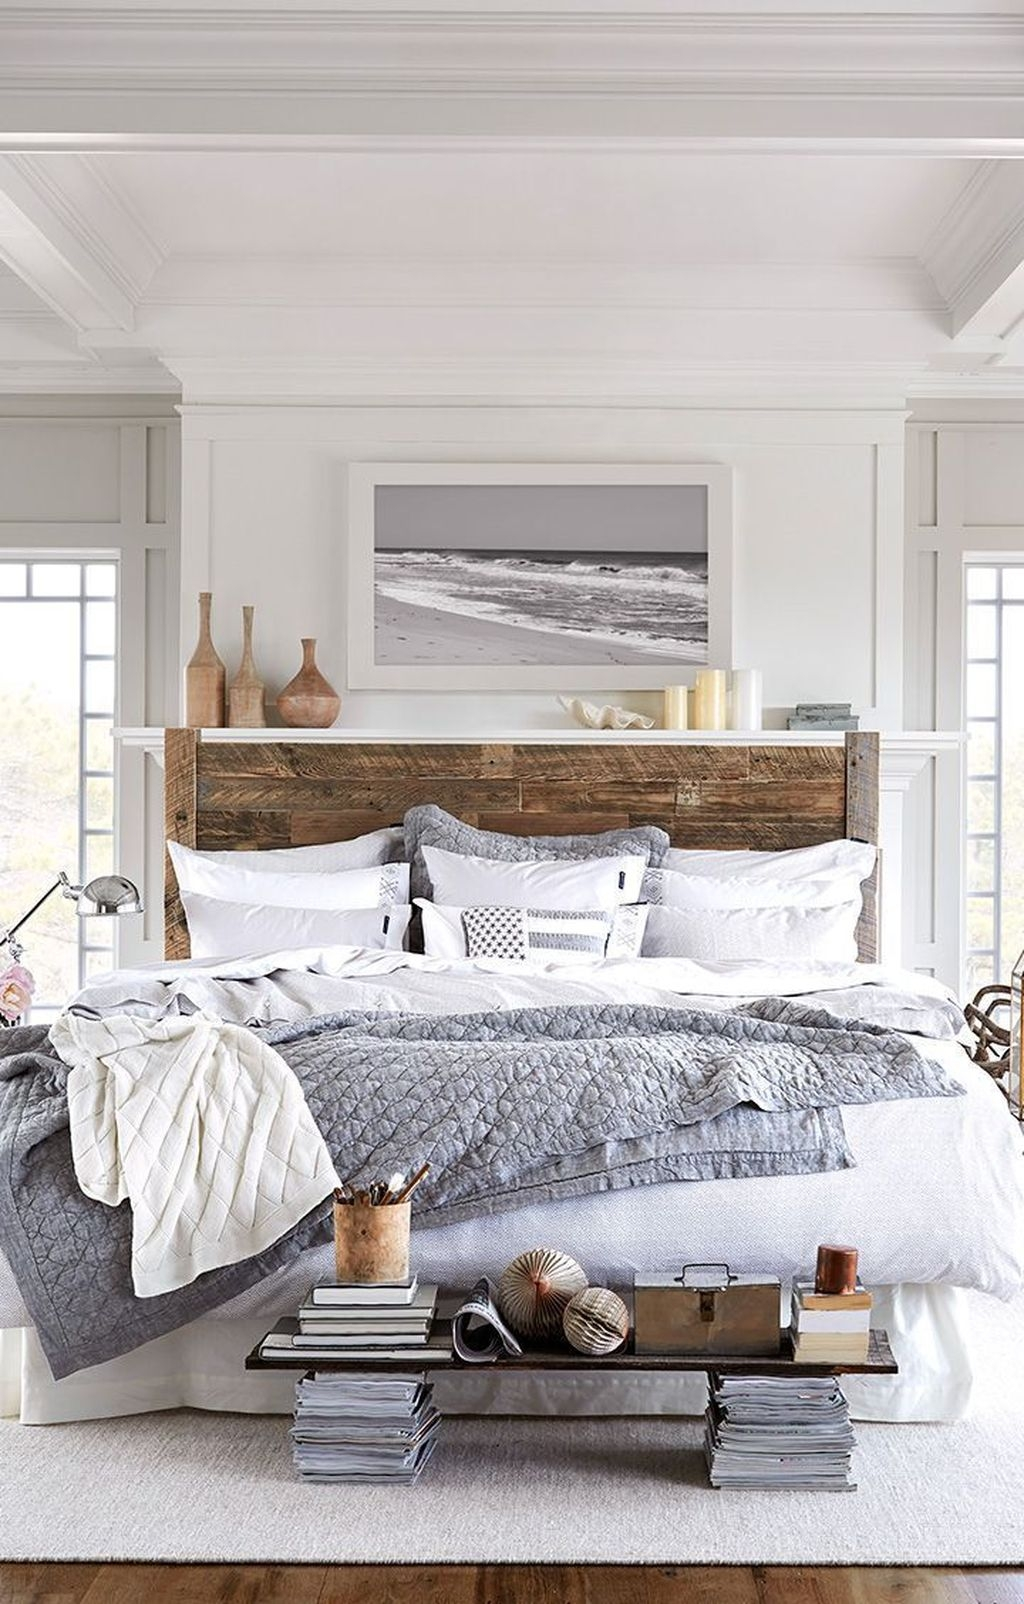 37 Cozy Rustic Bedroom Design Ideas 27